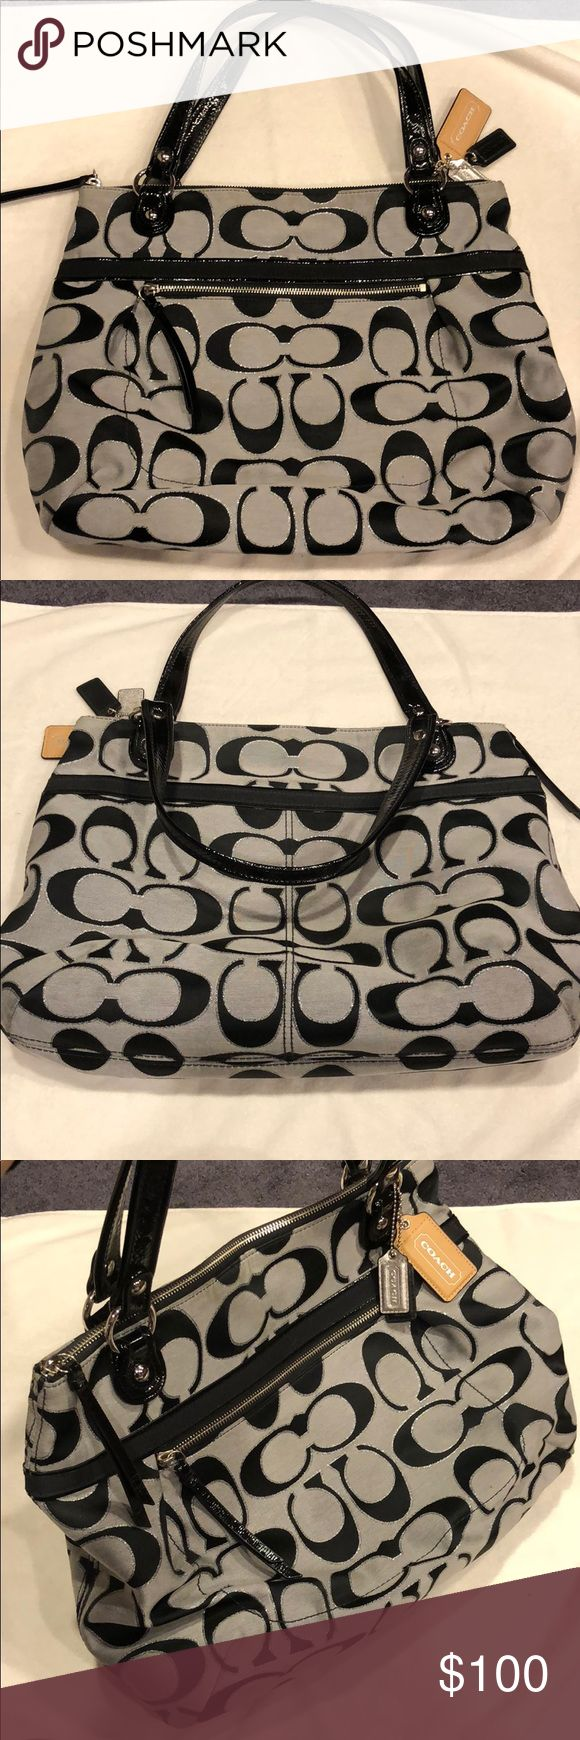 """Coach tote bag Coach tote bag • basically new • grey with black classic pattern • two black patent leather handles • zipper closure • 16.5"""" by 13.5"""" • Coach Bags Totes"""